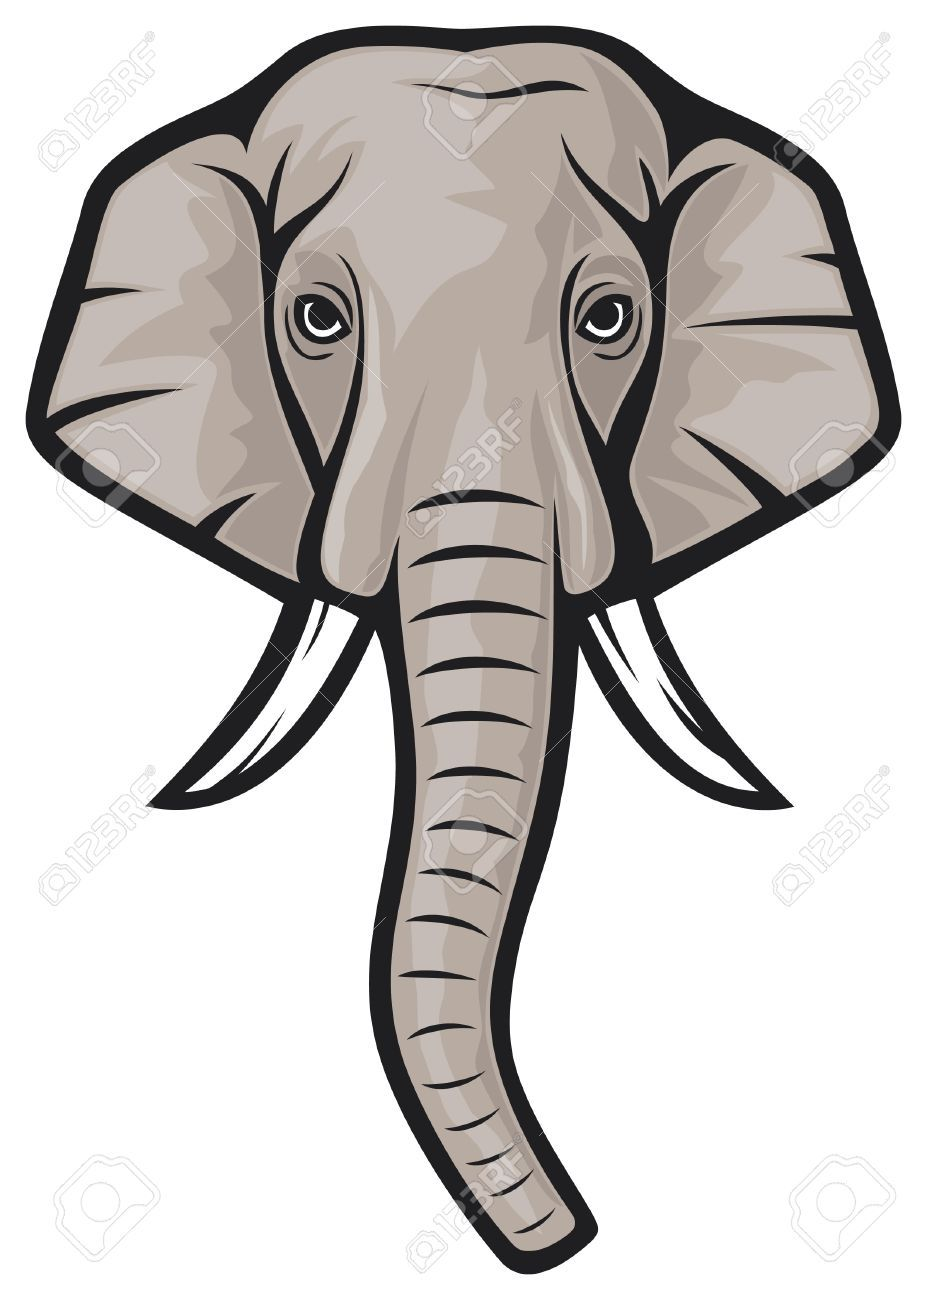 Image result for elephant face clip art.